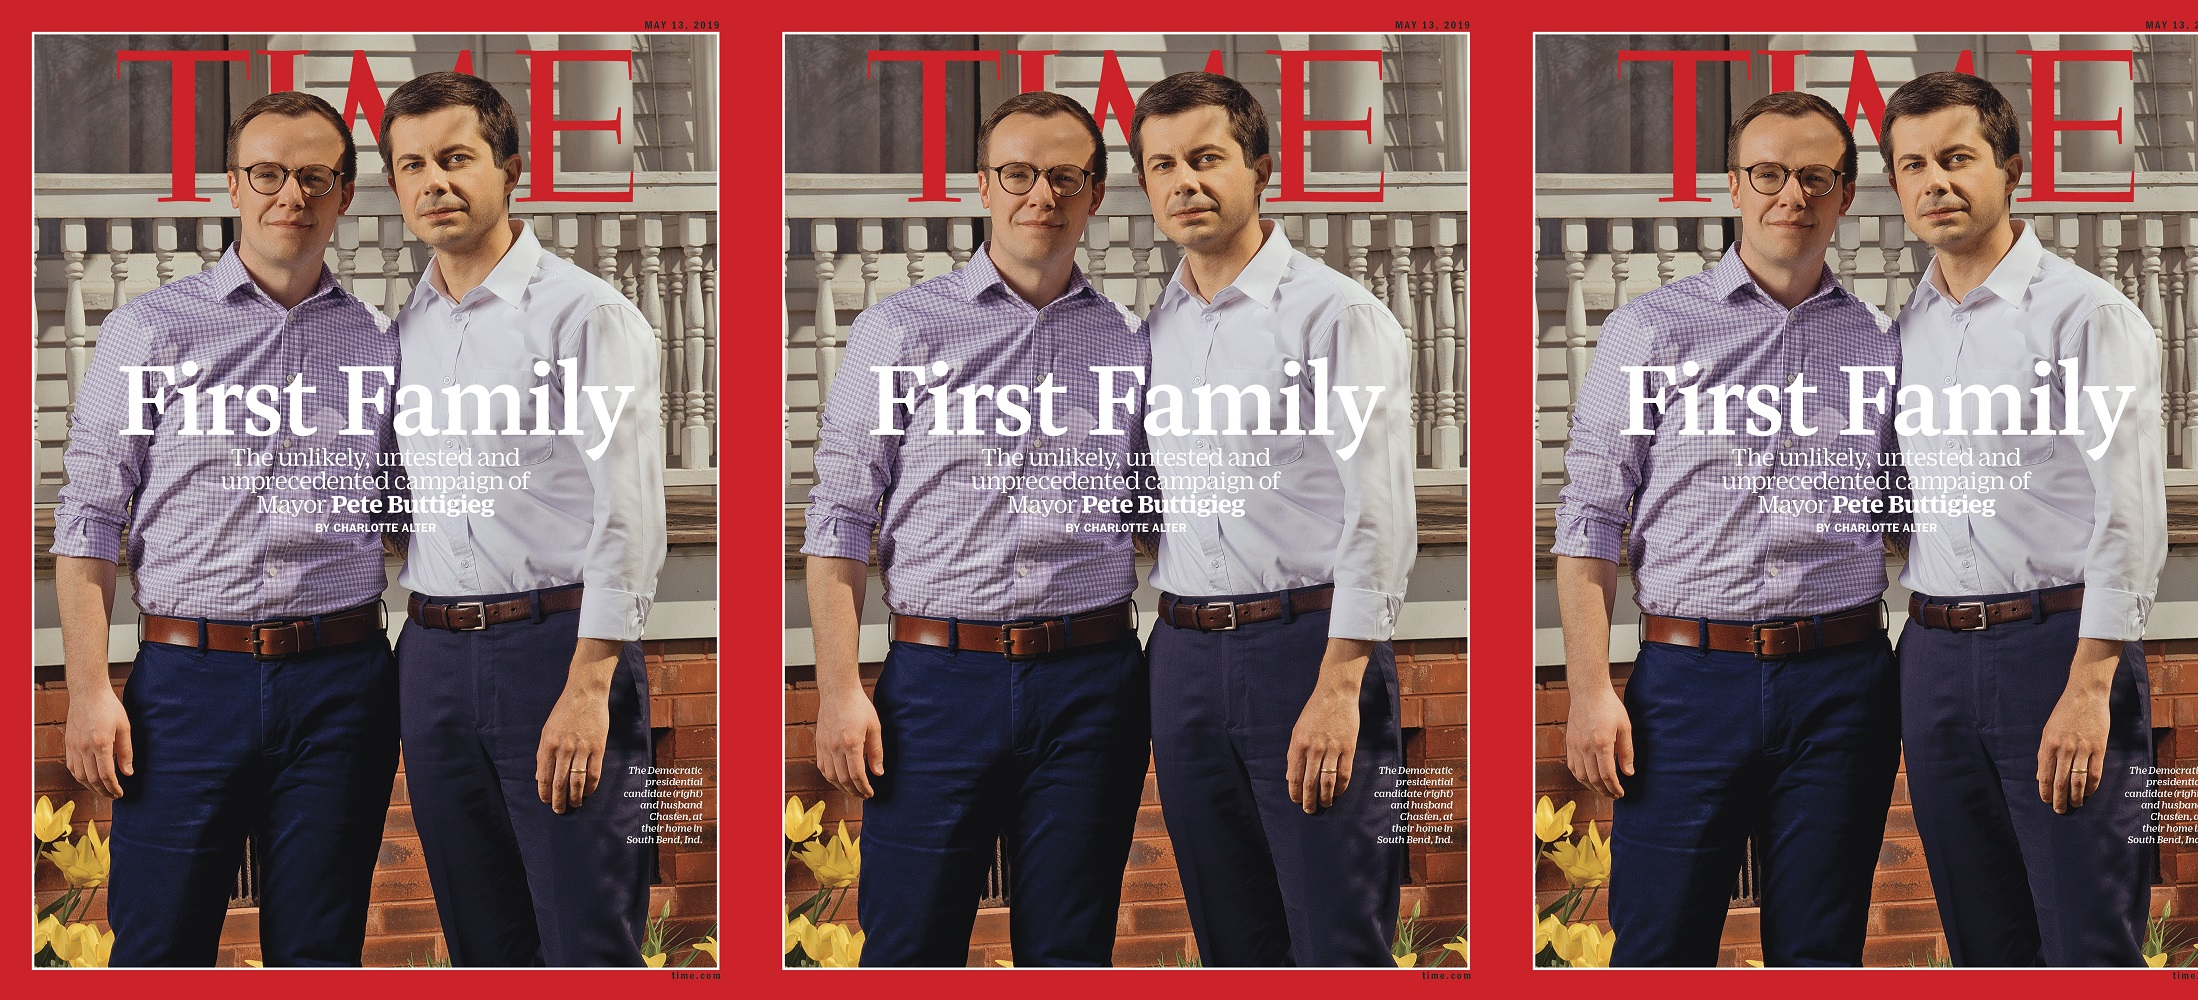 TIME Magazine dedicated the cover to Pete Buttigieg and husband Chasten Buttigieg